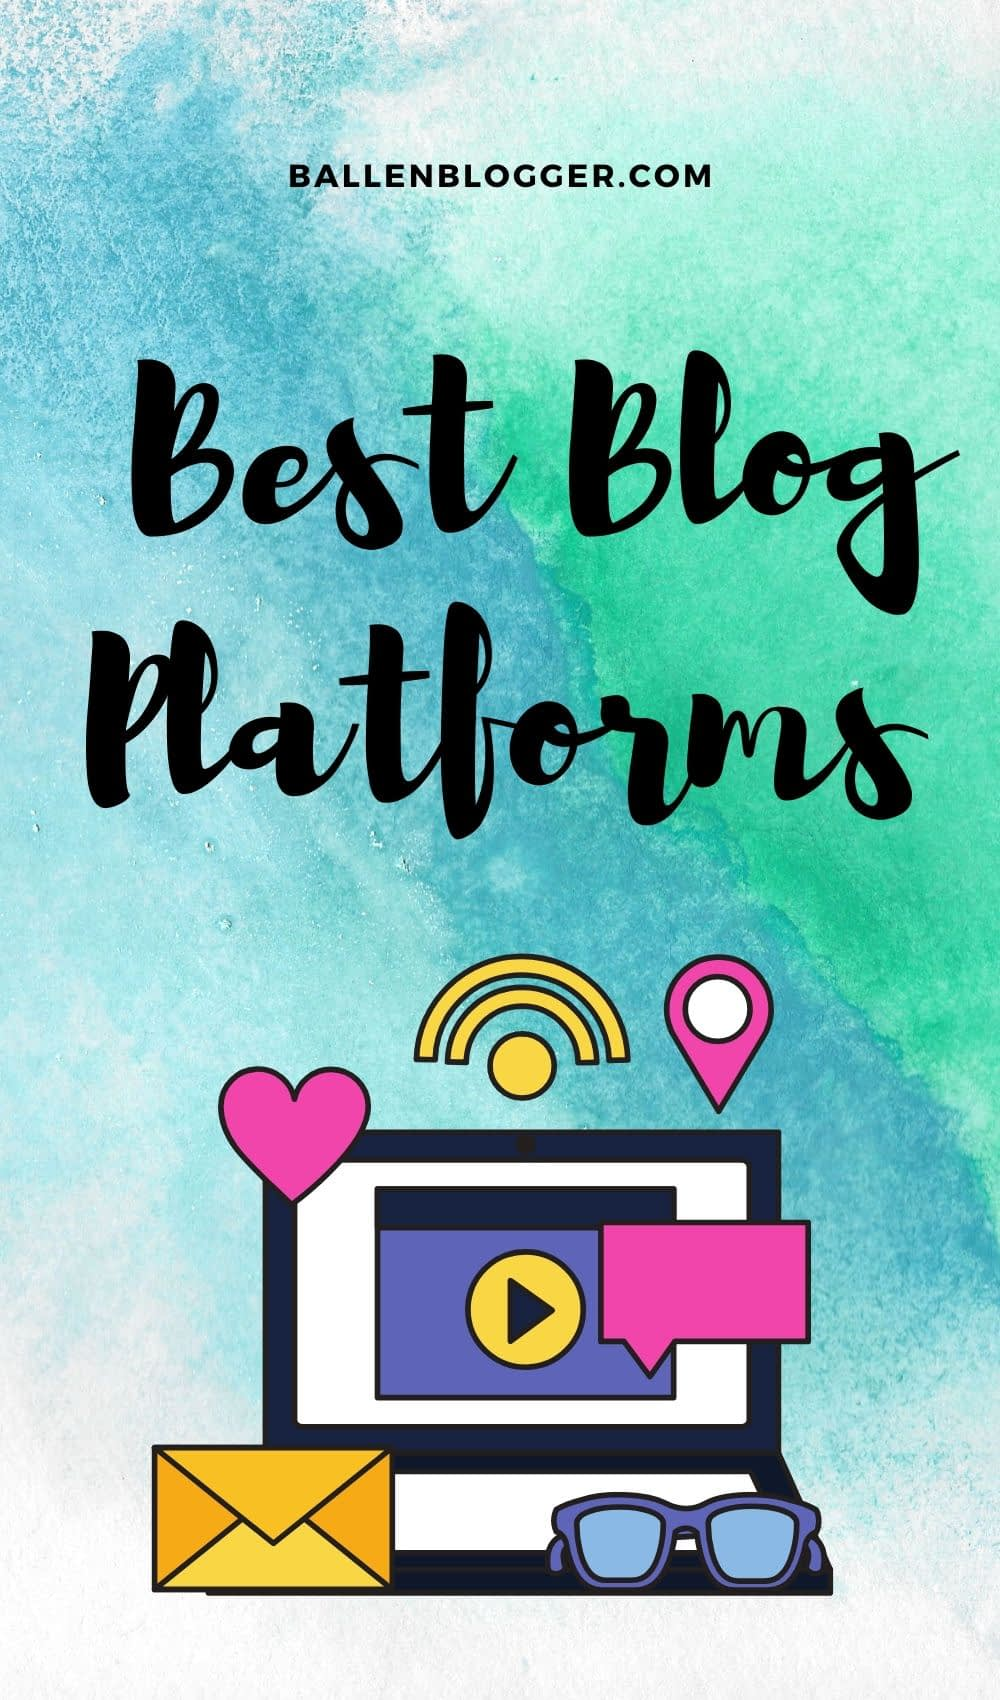 If you are ready to blog, choosing one of the best blog platforms will be key to your success. Not everyone will have the same needs so choosing the best blog platform for your needs is key. For example, WIX is probably a great choice for those that want an easy place to blog, where WordPress gives you more control, flexibility,  and growth abilities.